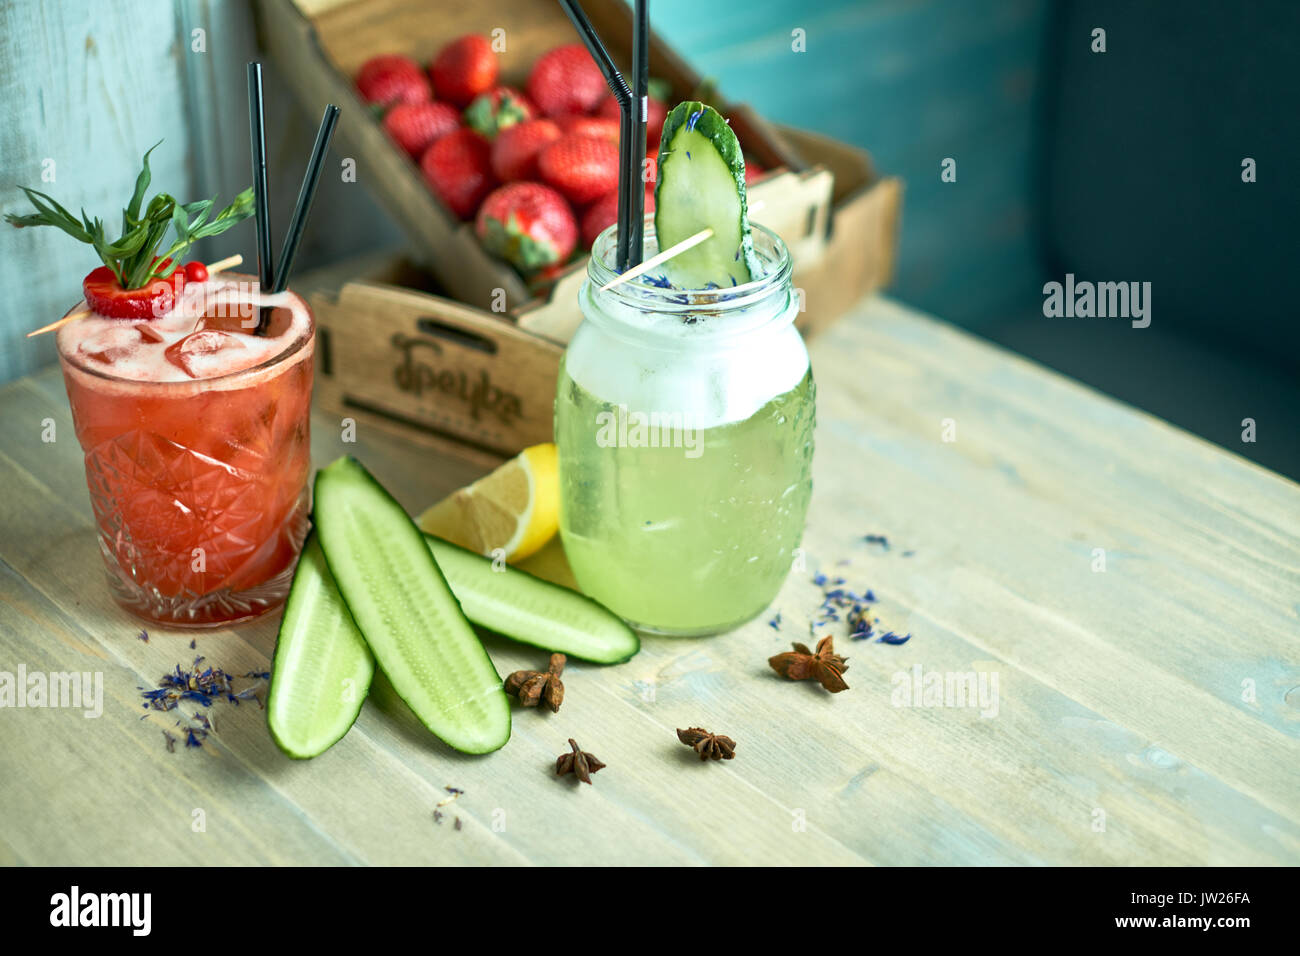 Homemade cucumber and mint lemonade in a glass on a blue wooden background. jpg - Stock Image